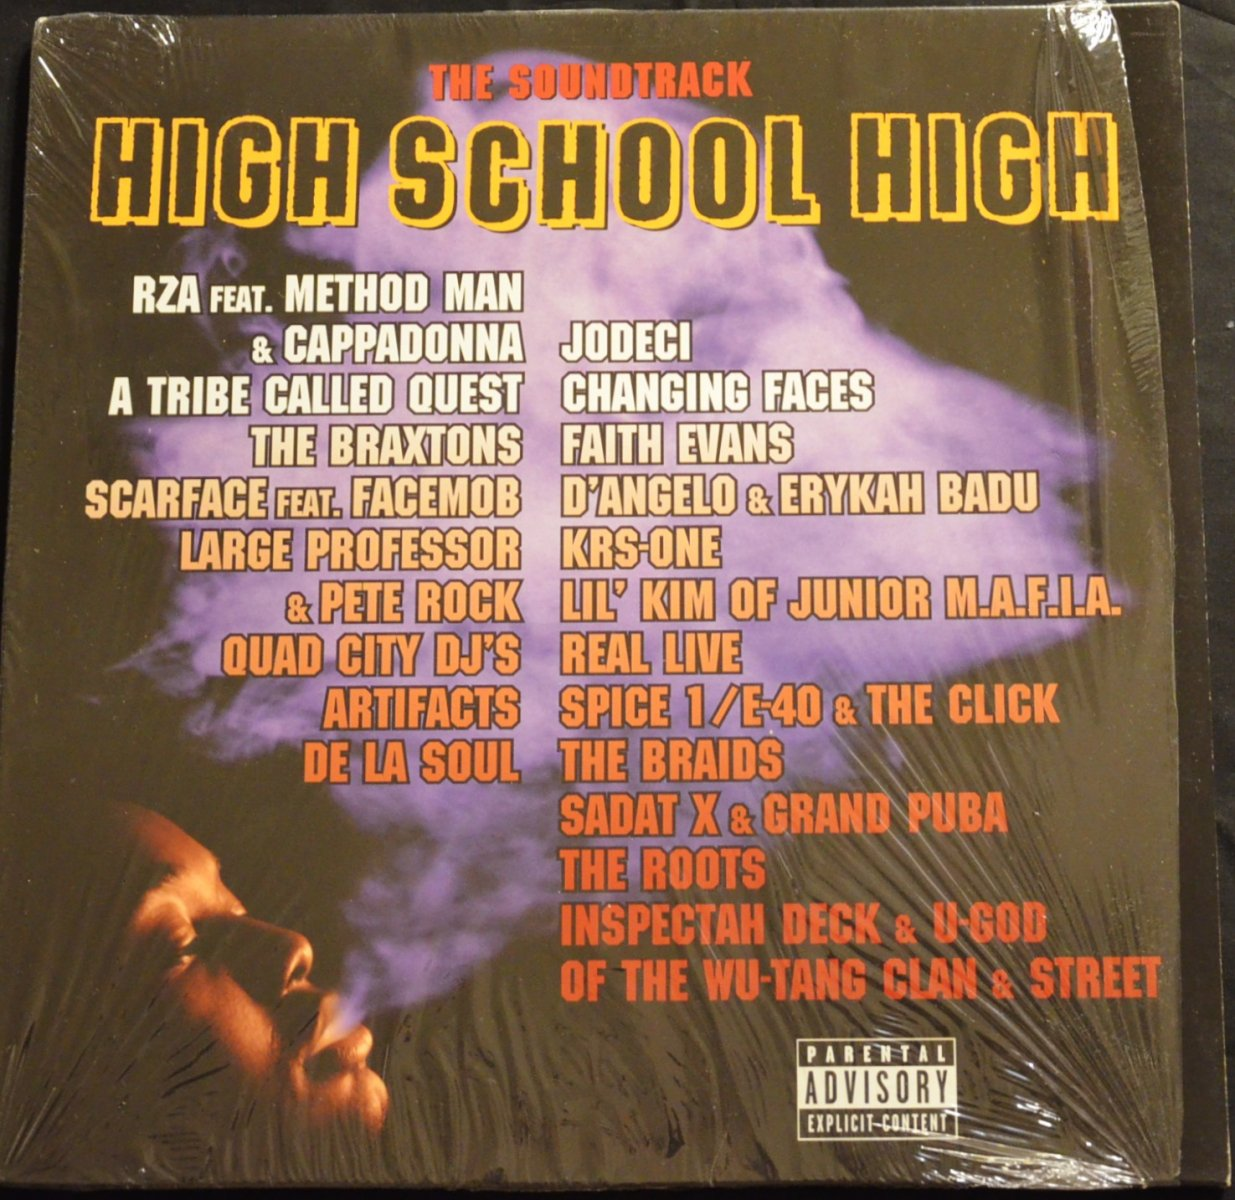 V.A. (LARGE PROFESSOR & PETE ROCK,A TRIBE CALLED QUEST...) / HIGH SCHOOL HIGH - THE SOUNDTRACK (2LP)